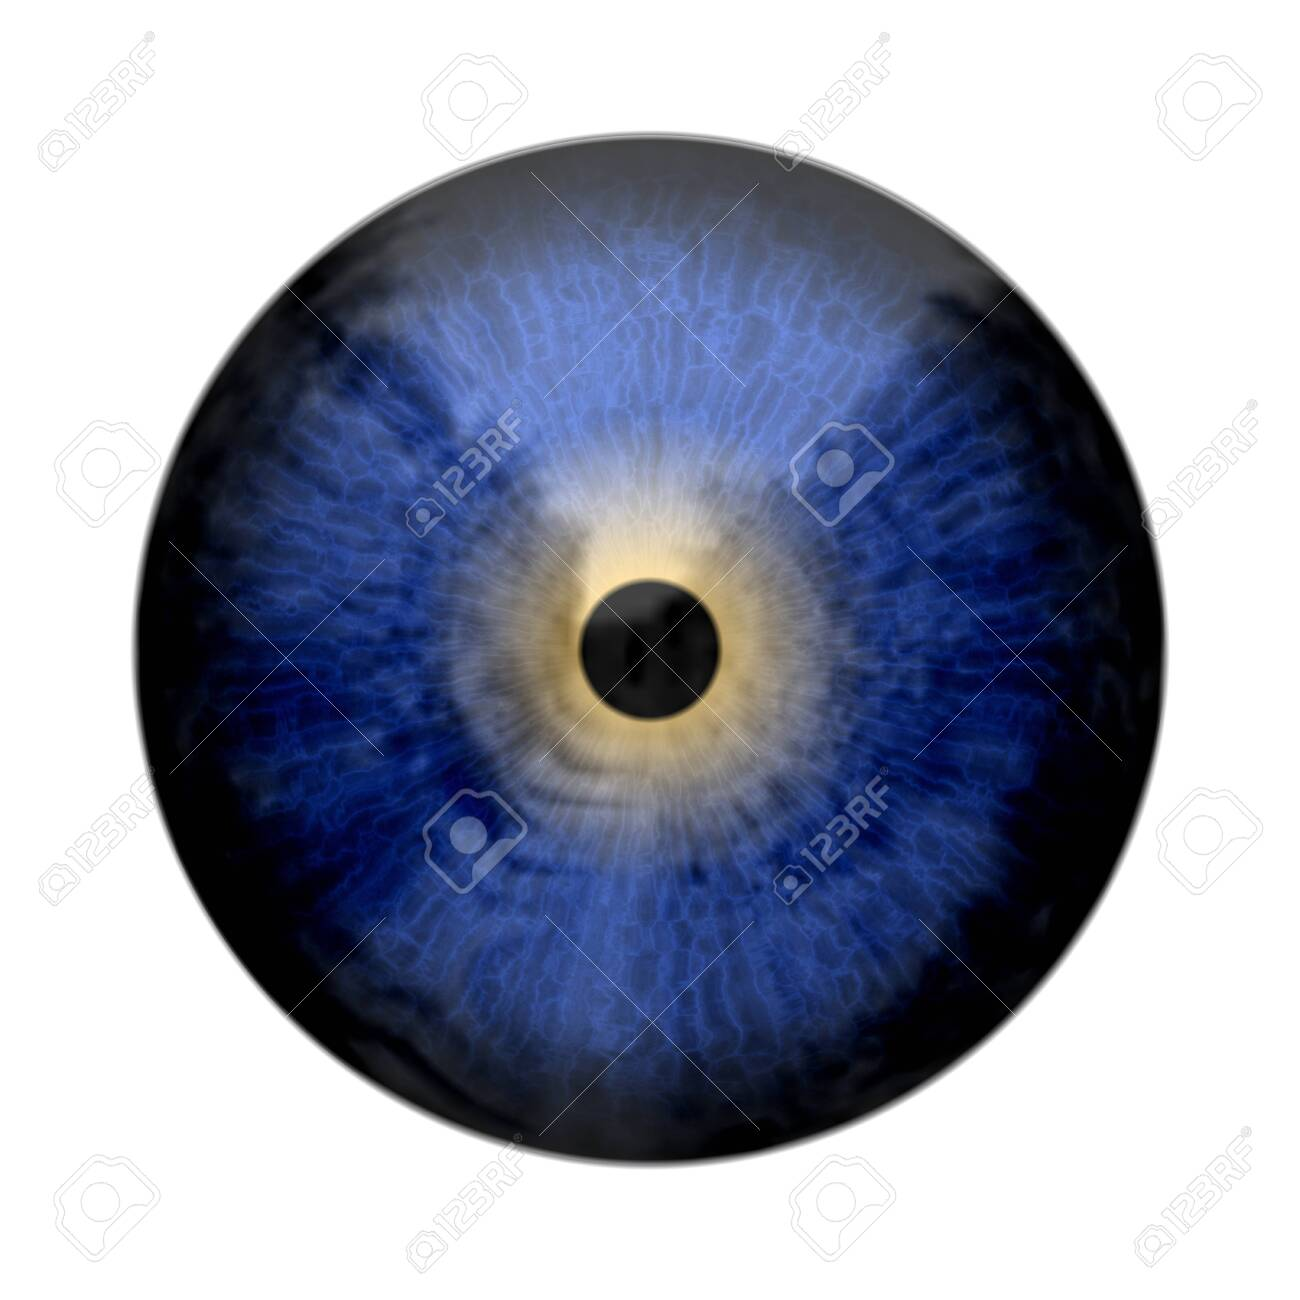 Eye, abstract digitally generated illustration for science, futuristic concepts, as backgrounds etc. - 128379837